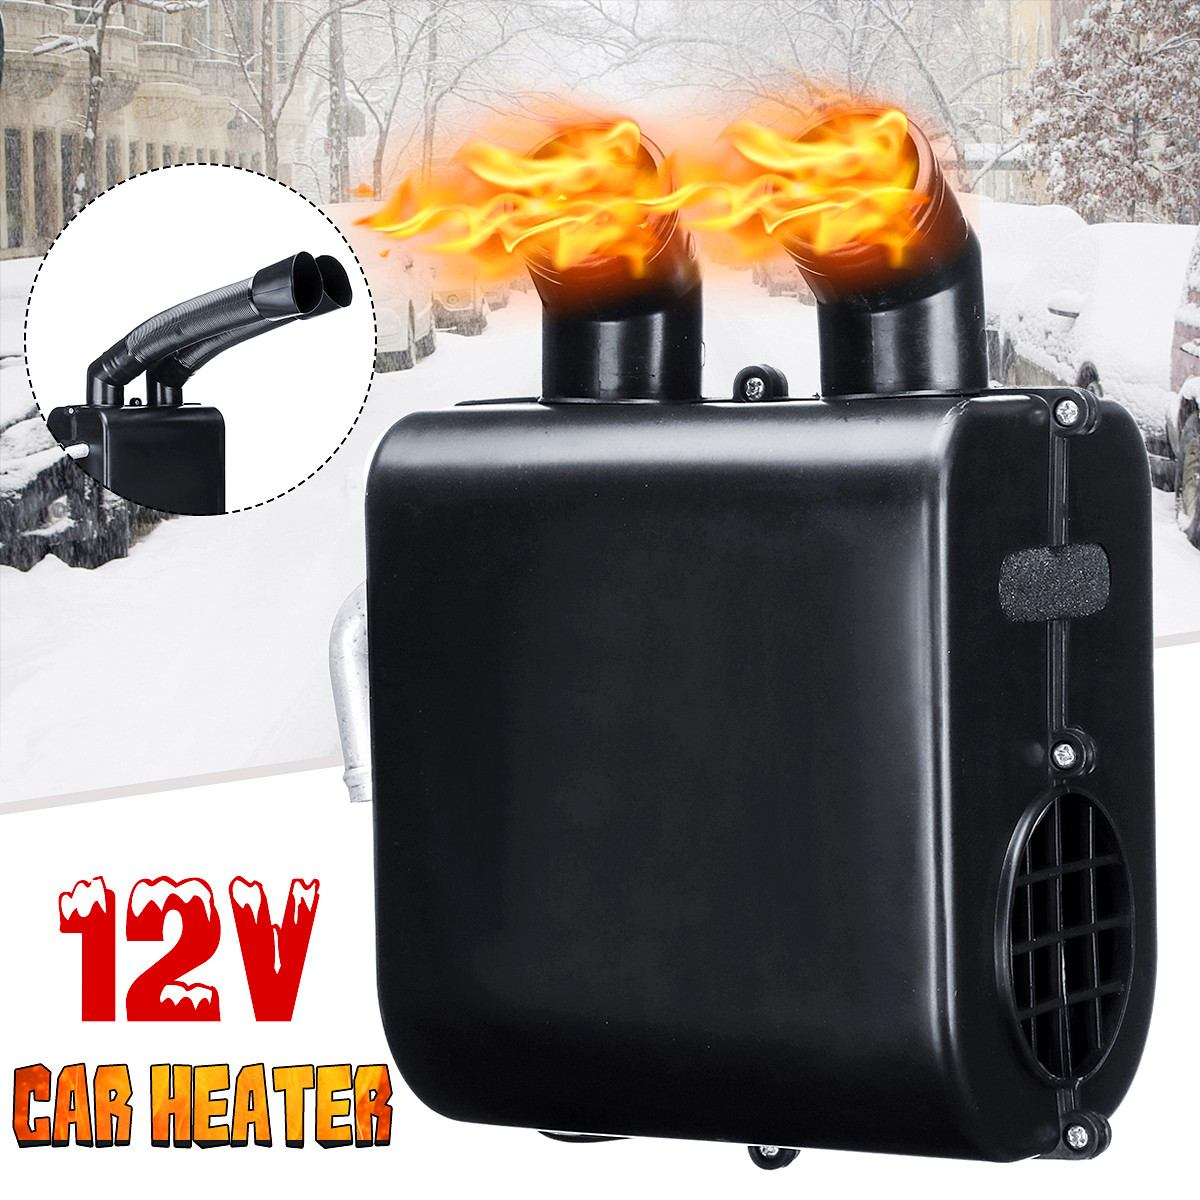 12V Electric Fan Heater Heating Portable Auto Car Heater Heating Defroster Windshield Defroster Demister Winter appliances12V Electric Fan Heater Heating Portable Auto Car Heater Heating Defroster Windshield Defroster Demister Winter appliances